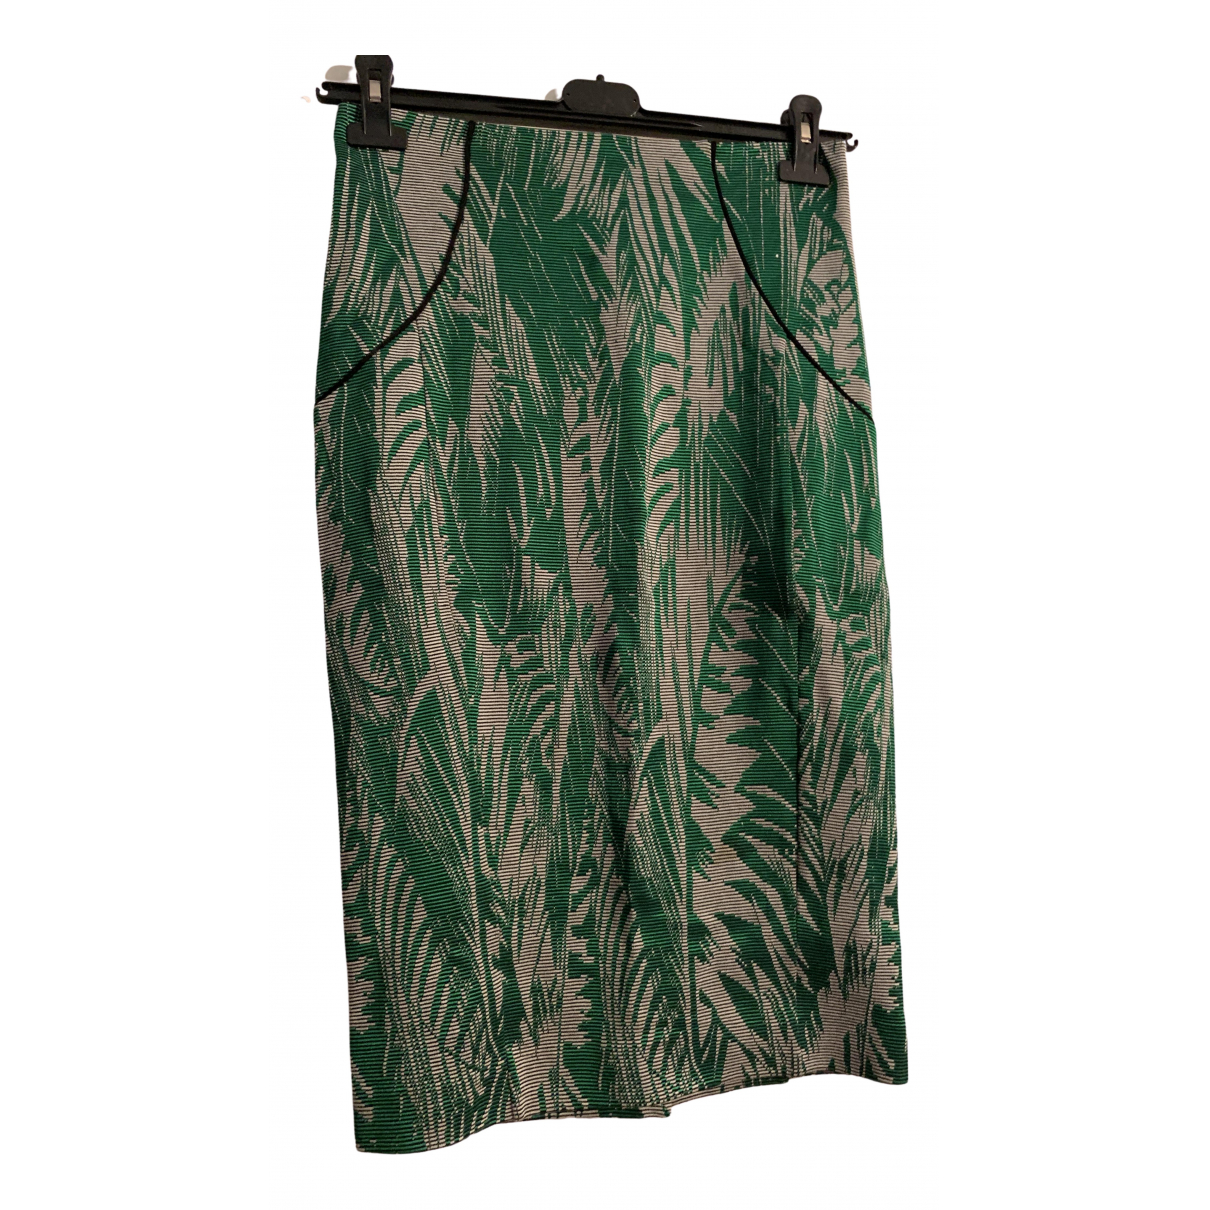 Patrizia Pepe \N Green Cotton skirt for Women 44 IT